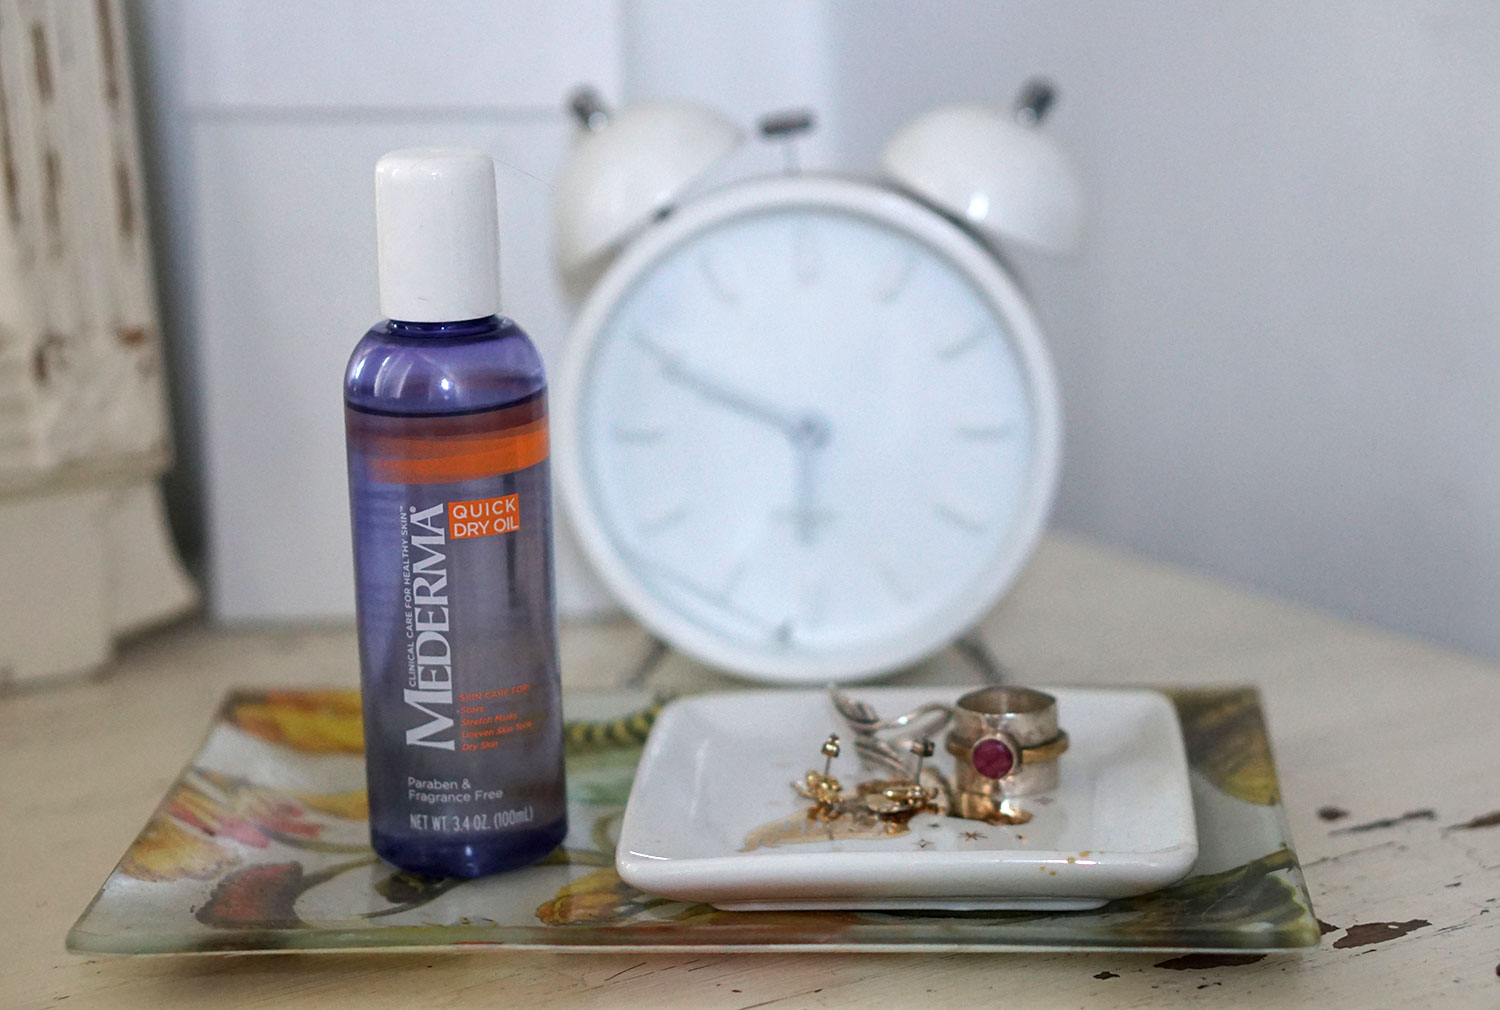 mederma quickdry oil review